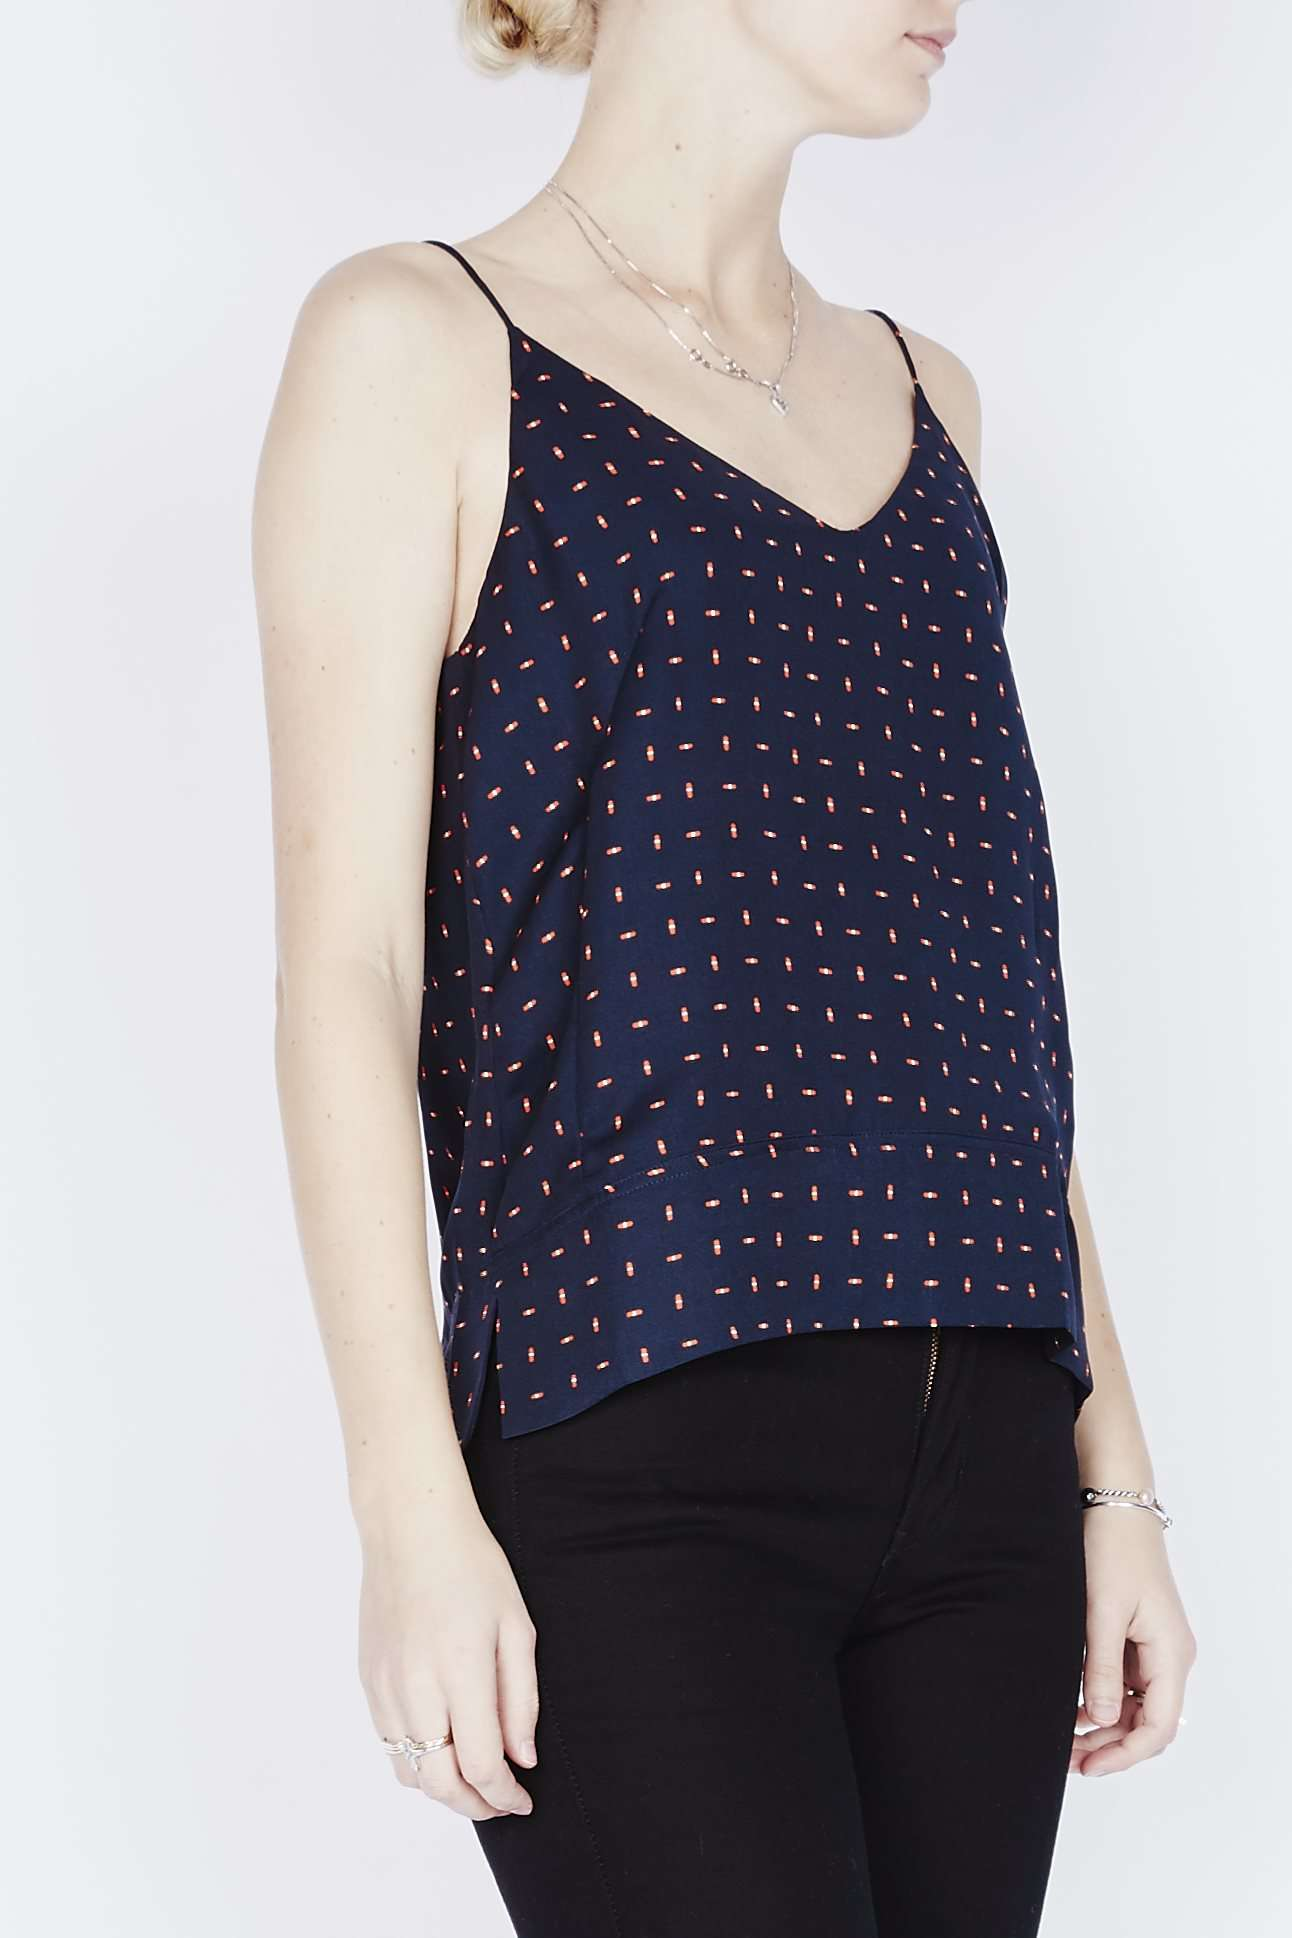 Image of   BIAF TOP AOP 3903 - Navy - NAVY XS